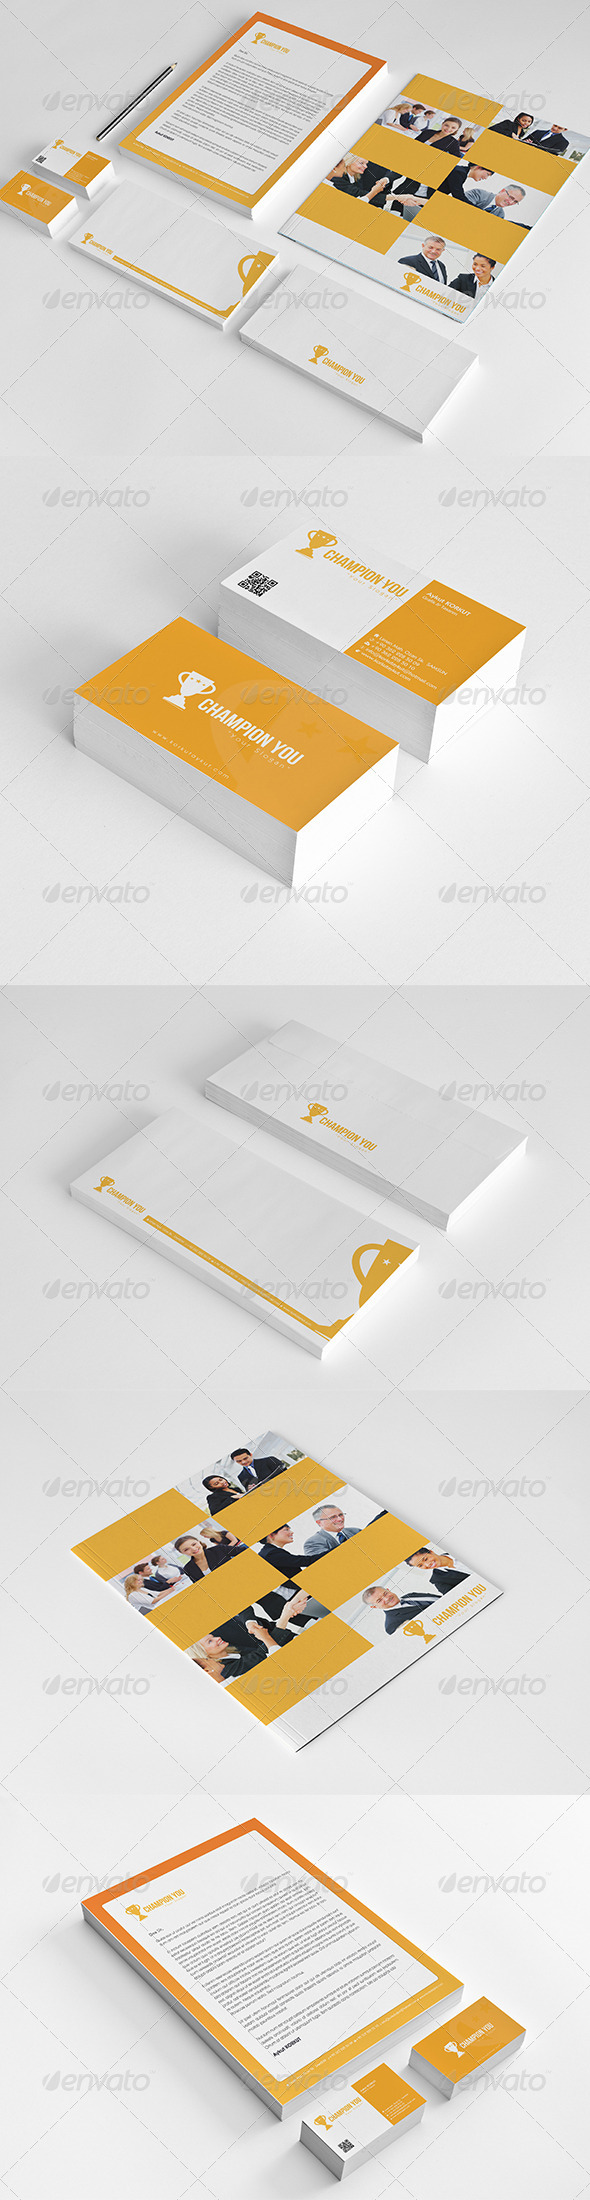 Champion Corporate Identity Package  - Stationery Print Templates